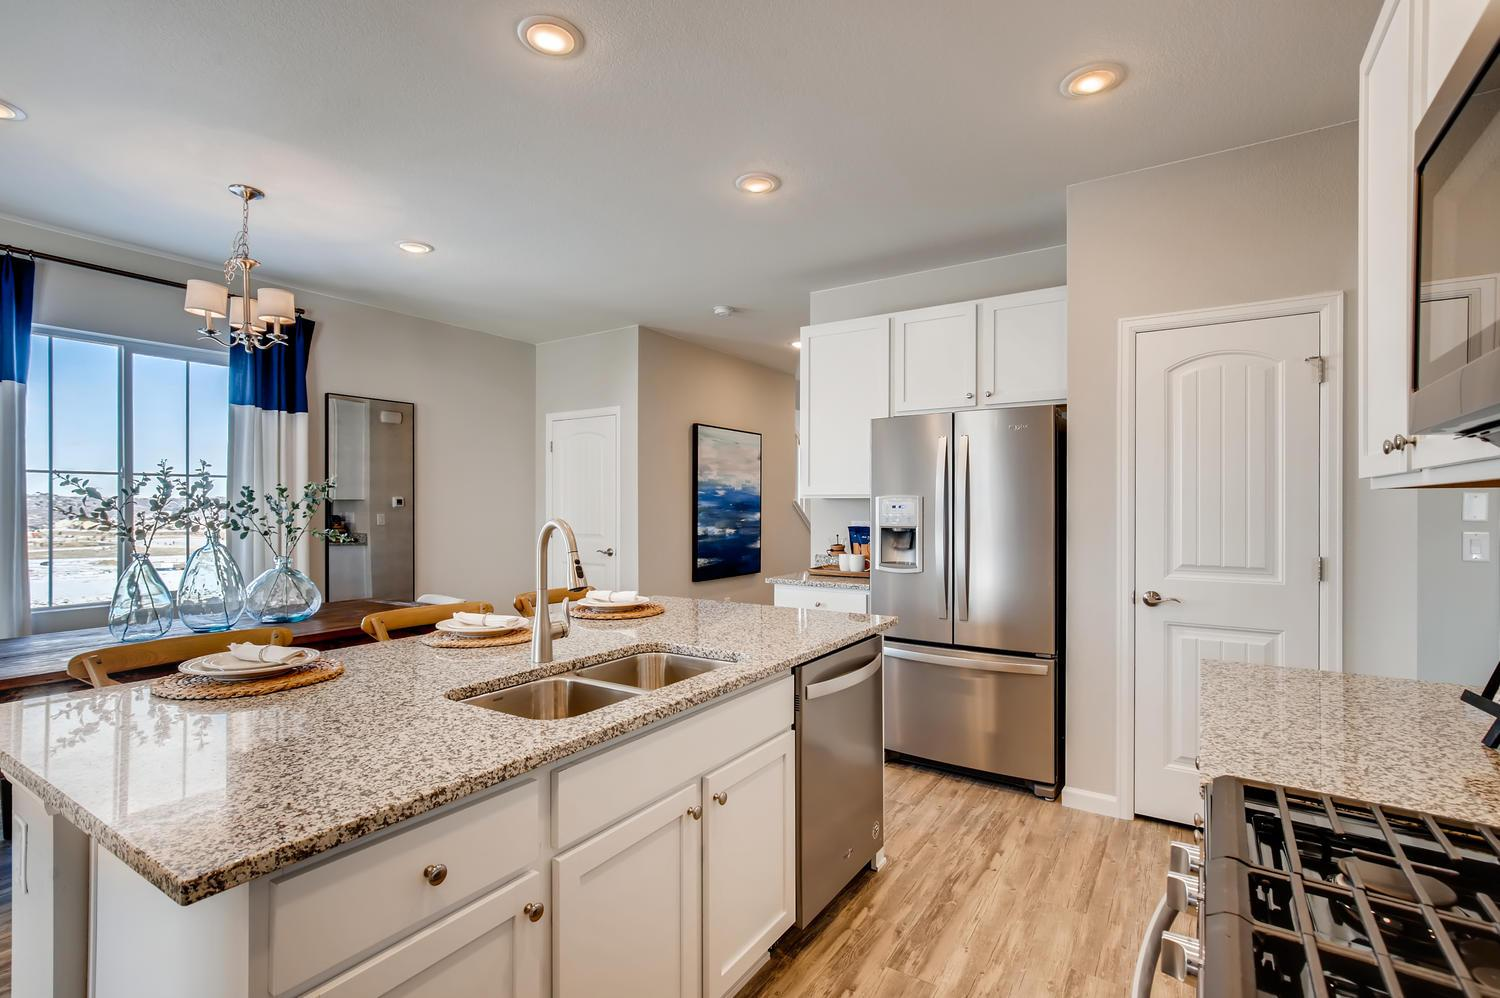 Kitchen featured in the Copper (Residence 29203) By Century Communities in Denver, CO